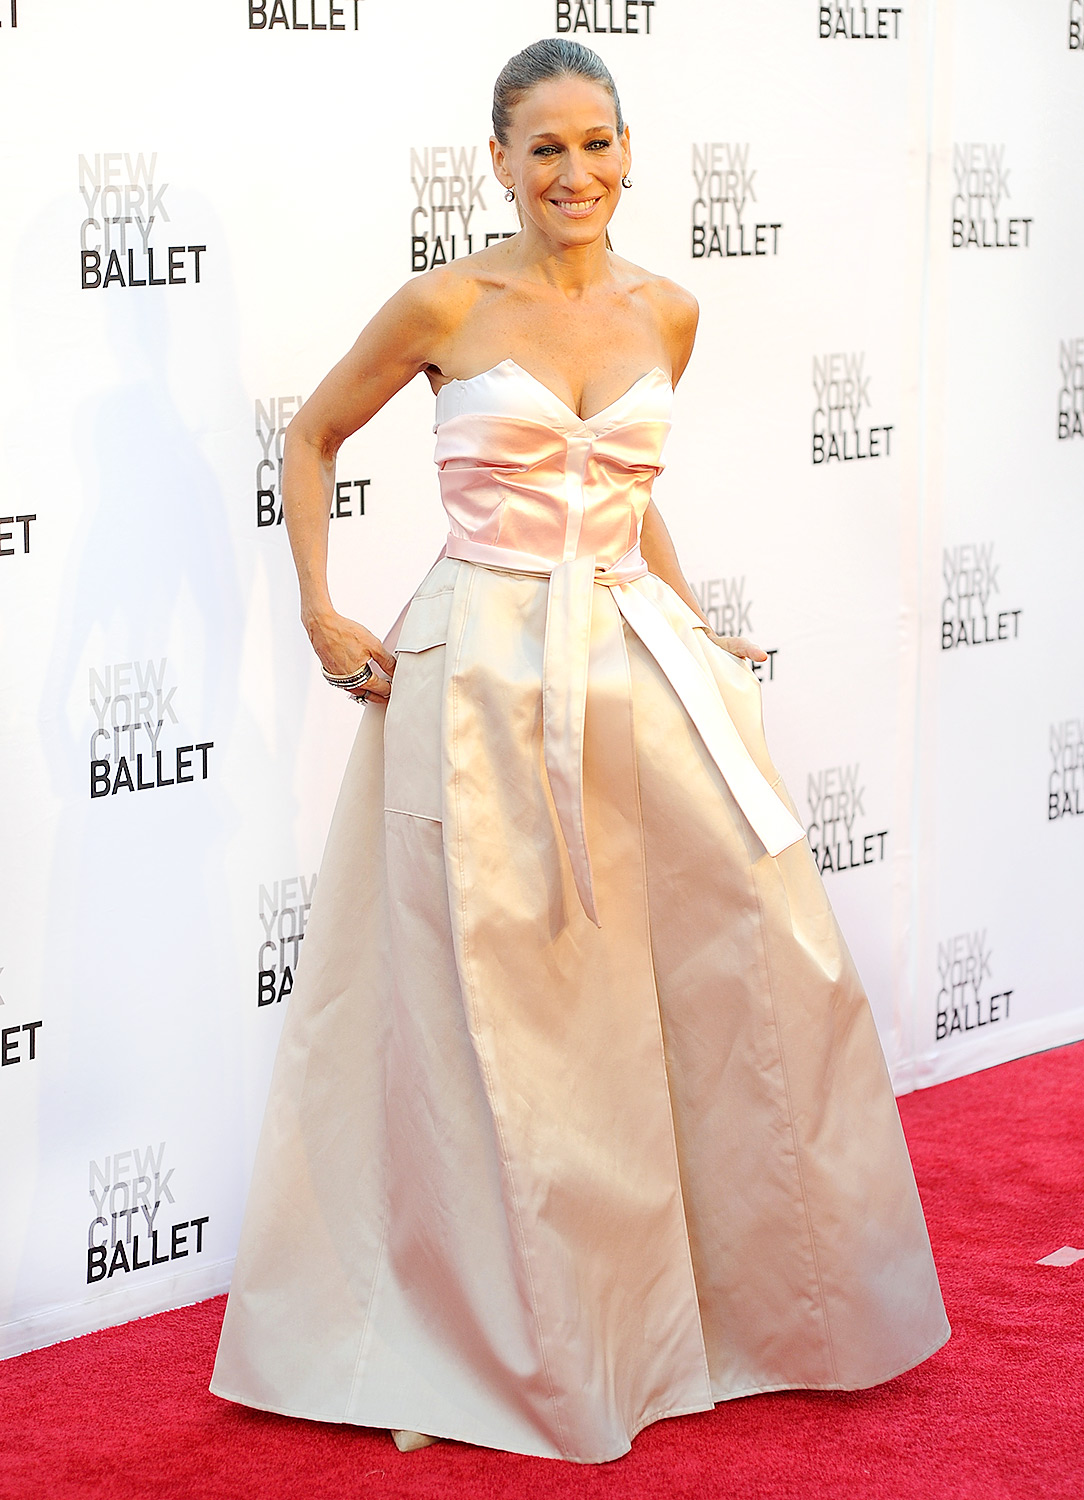 A lifelong dancer, Parker worked the carpet at New York City Ballet's Fall Gala on Sept. 9, 2013, in a blush-hued dress by two designers, Prabal Gurung and Olivier Theyskens. A slicked-back ponytail completed the ensemble.